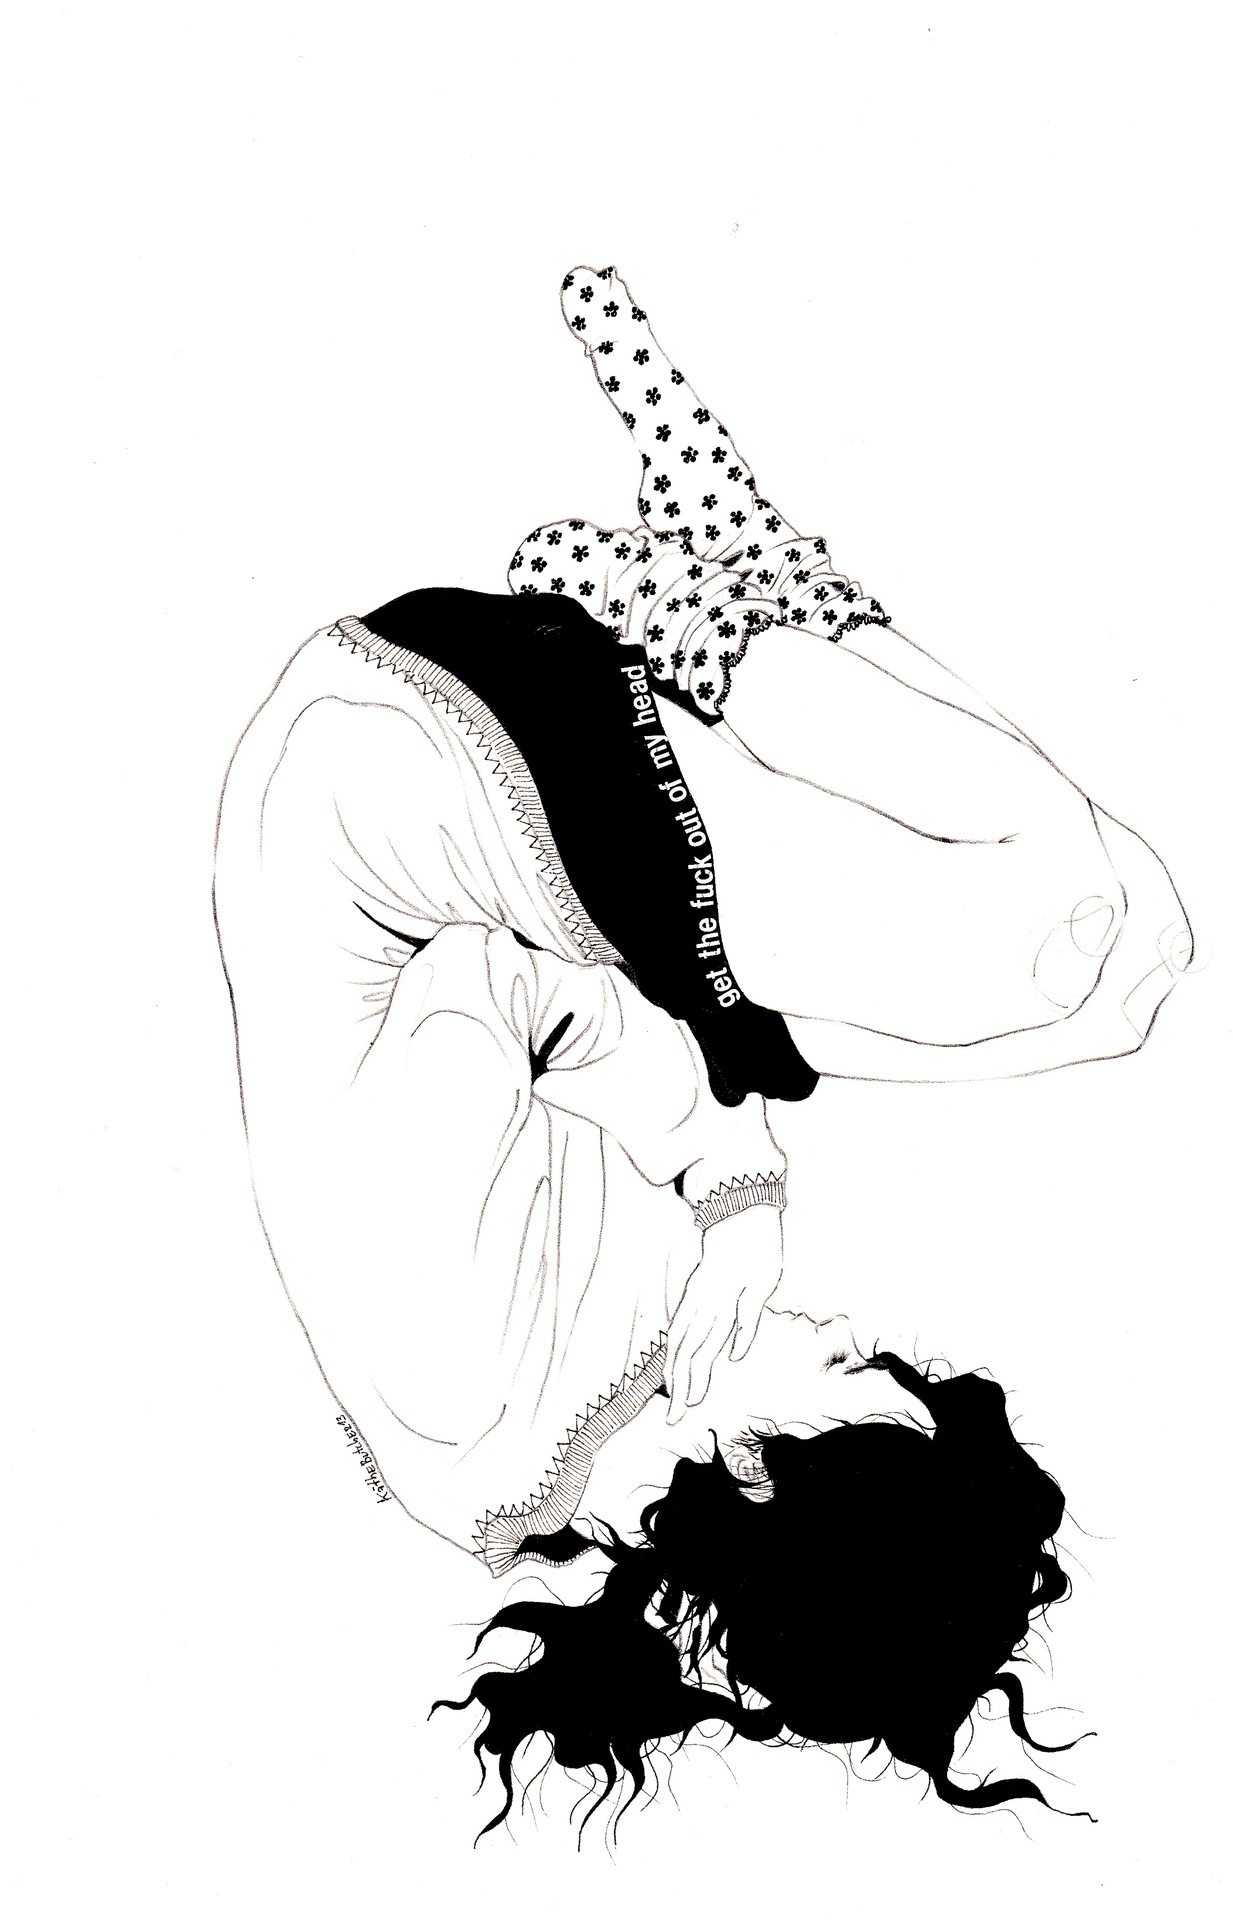 Kaethe Butcher's Seductions: tumblr_mvyjdlb1PH1sj1vz2o1_1280.jpg